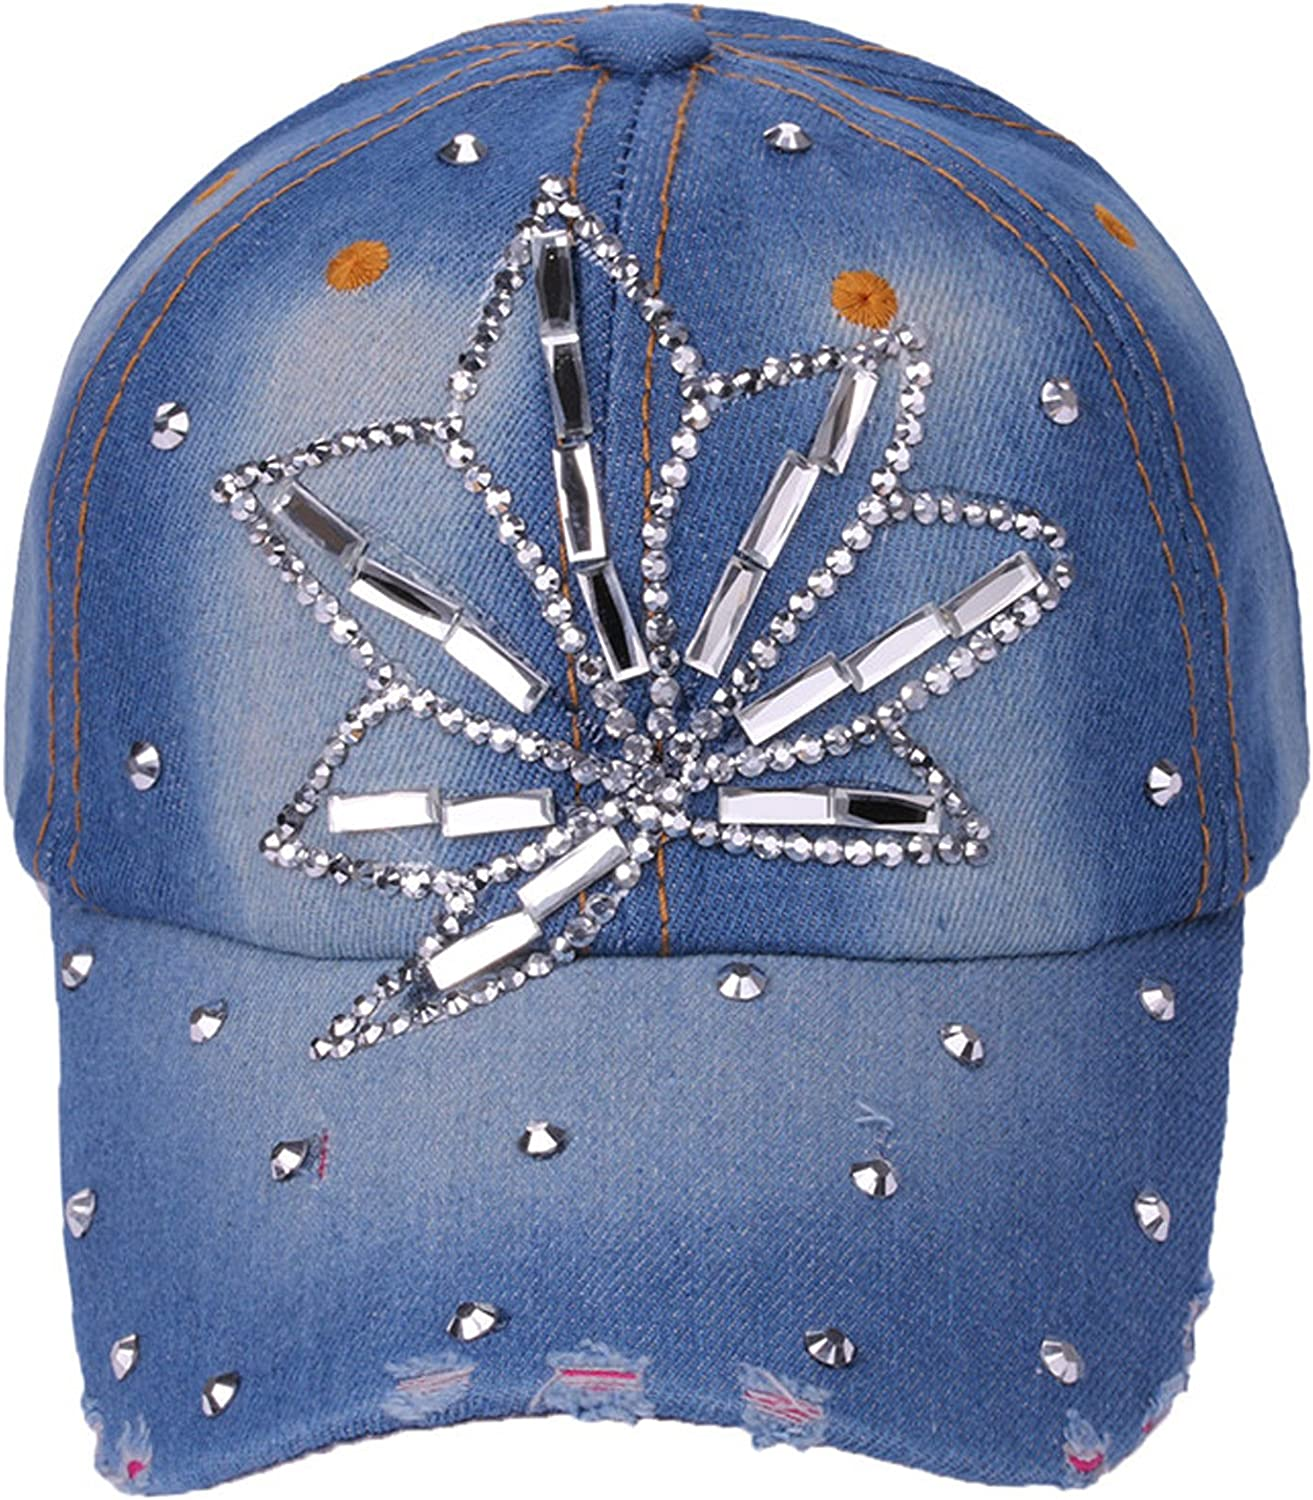 Deer Mum Women Denim Jean Bling Cross Baseball Cap